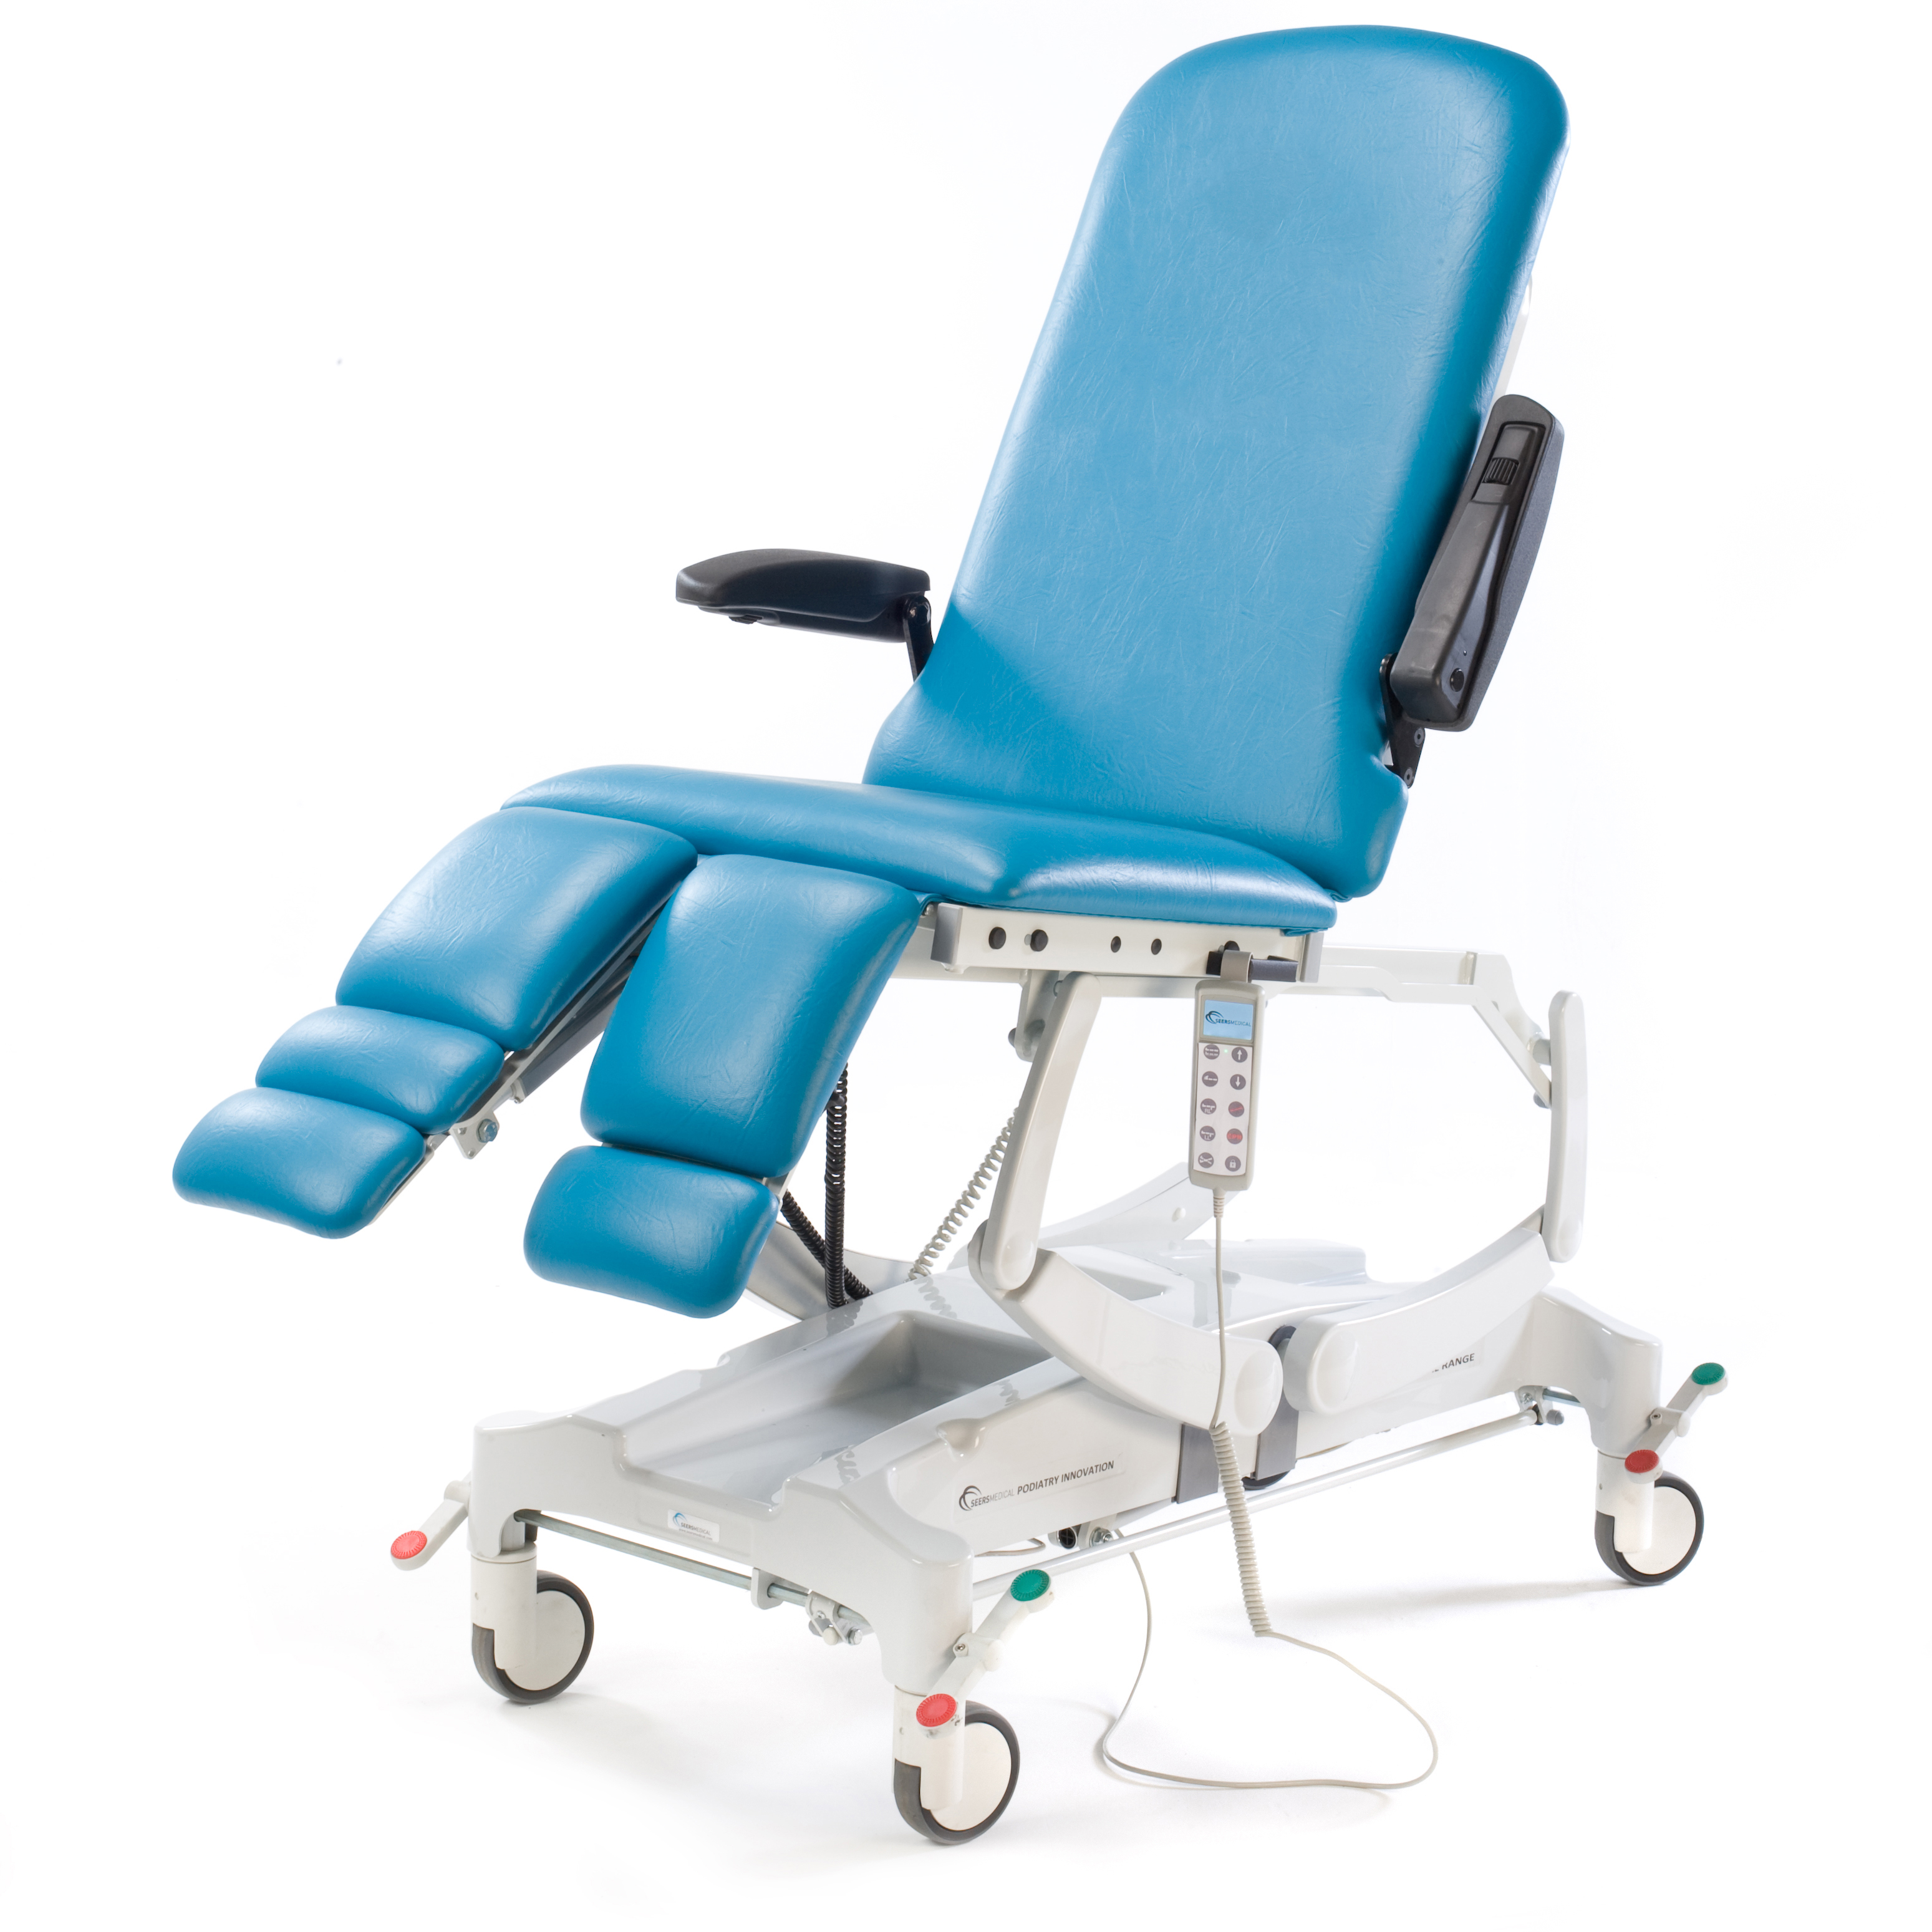 SEERS Medical CLINNOVA Podiatry Couch Review • Podiatry Supplies